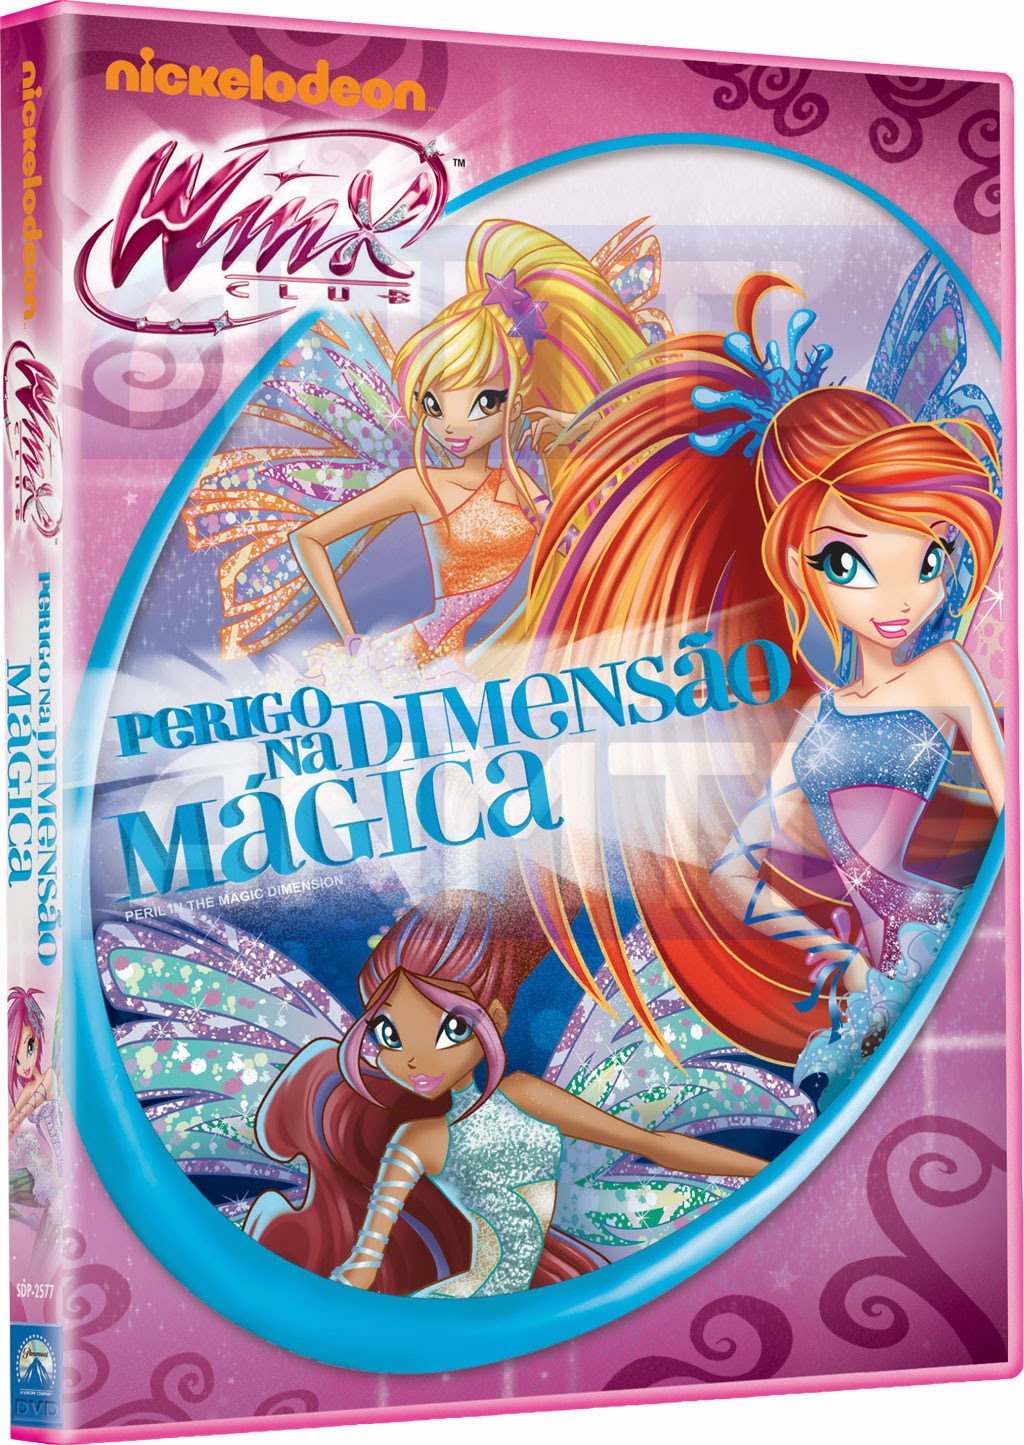 Winx Club: Magical Adventure DVD #Giveaway - What Mommies Need